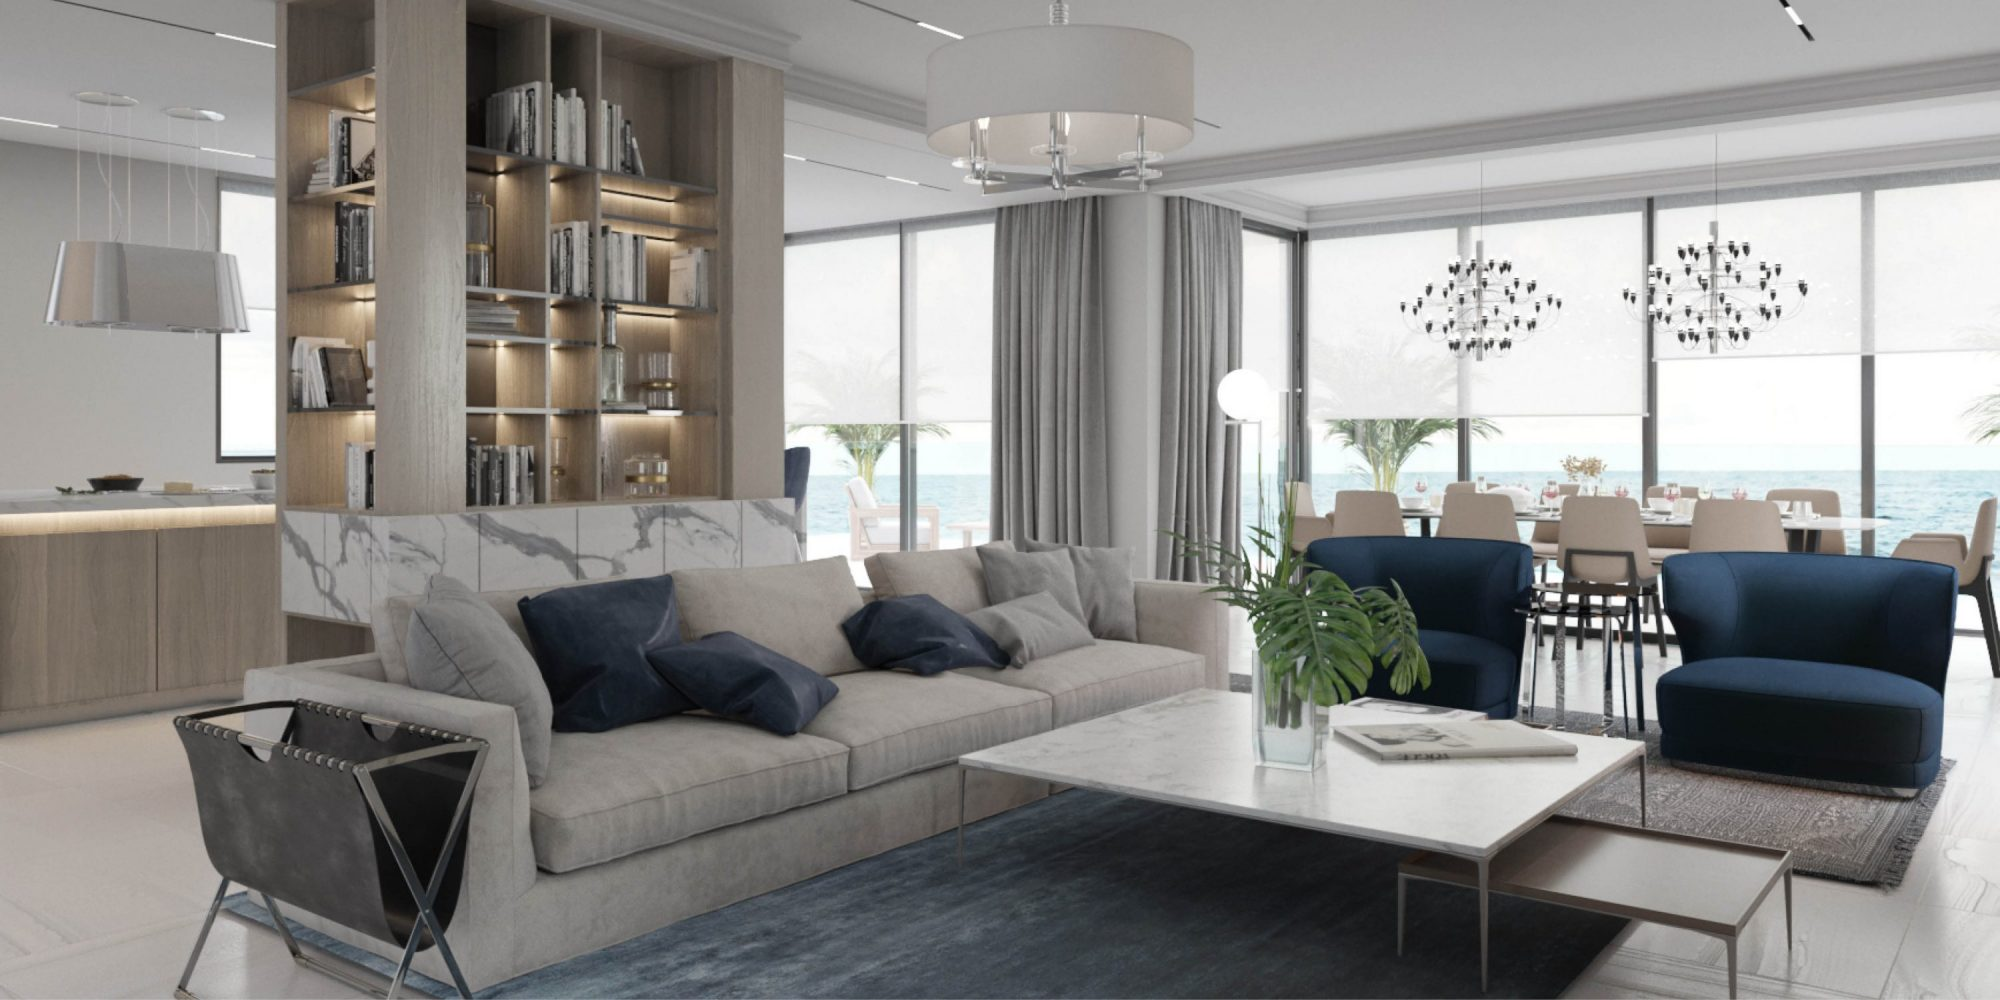 Interior design services in Cyprus